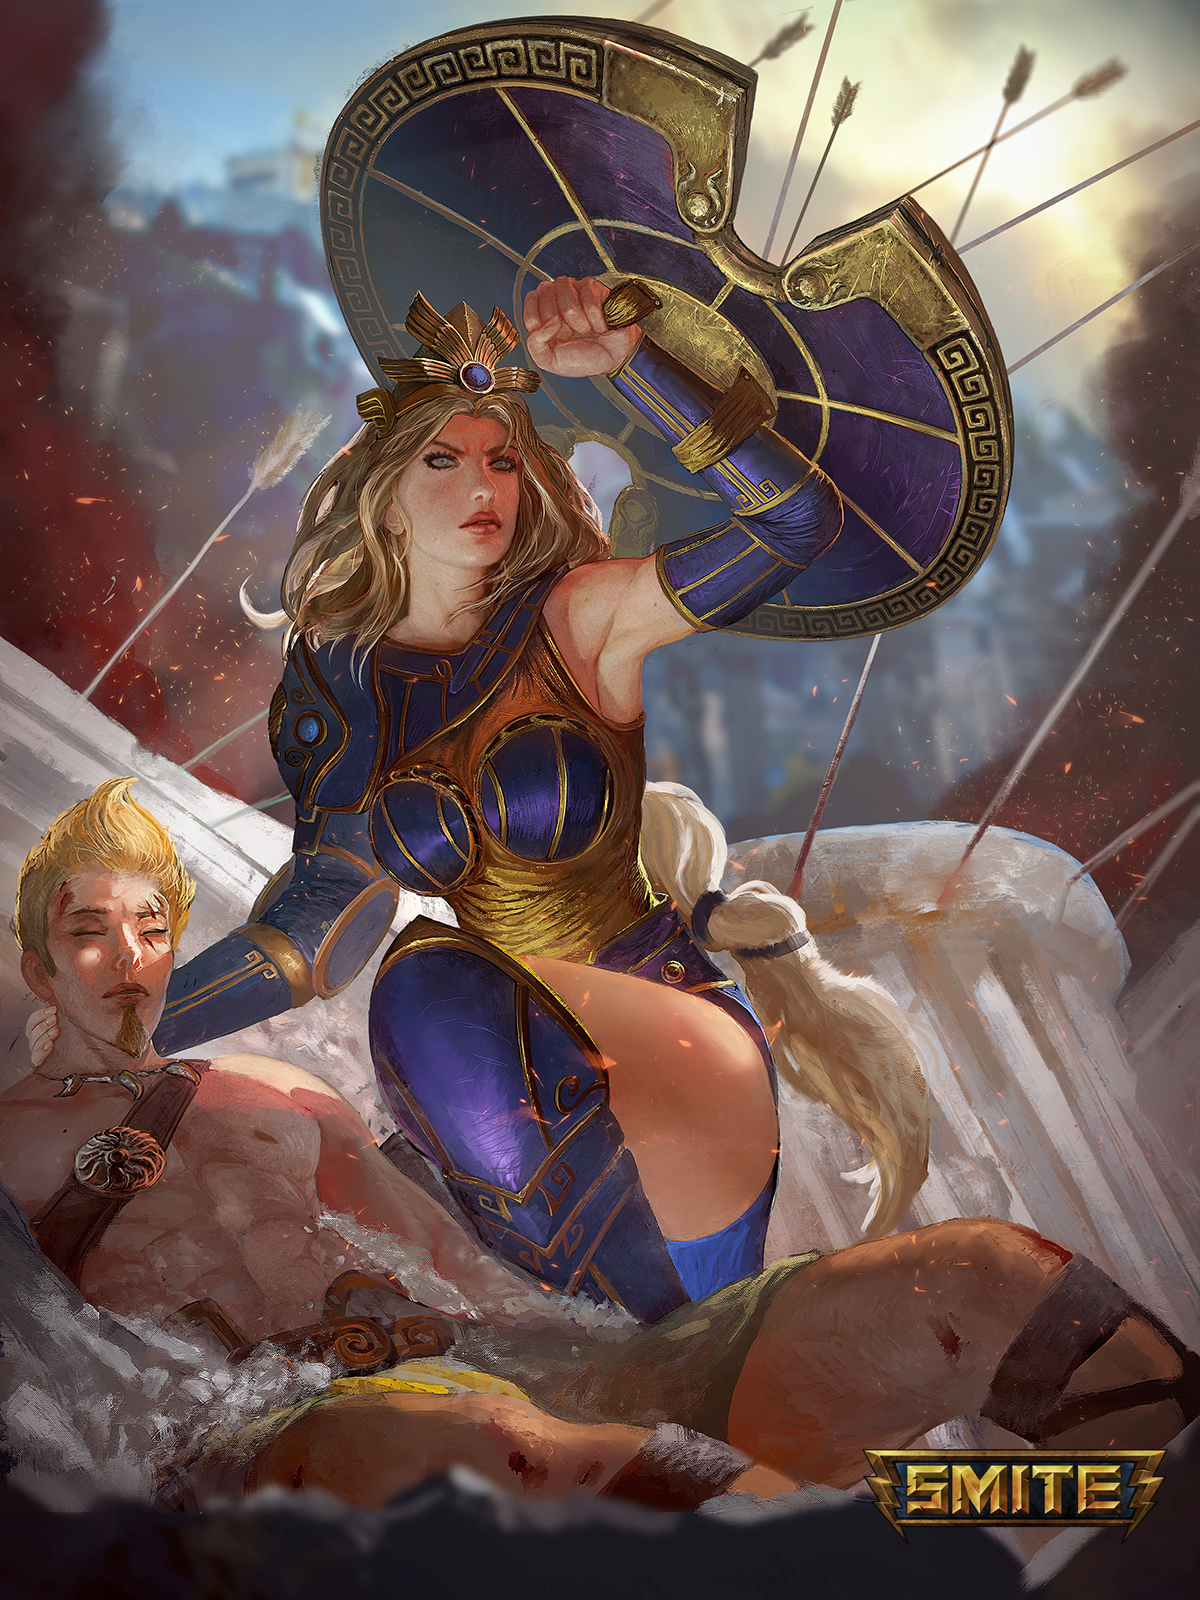 mastery skin by our beloved jaggudada all of his smite art in general is astoundingly beautiful and my favorite so definitely check out his deviant